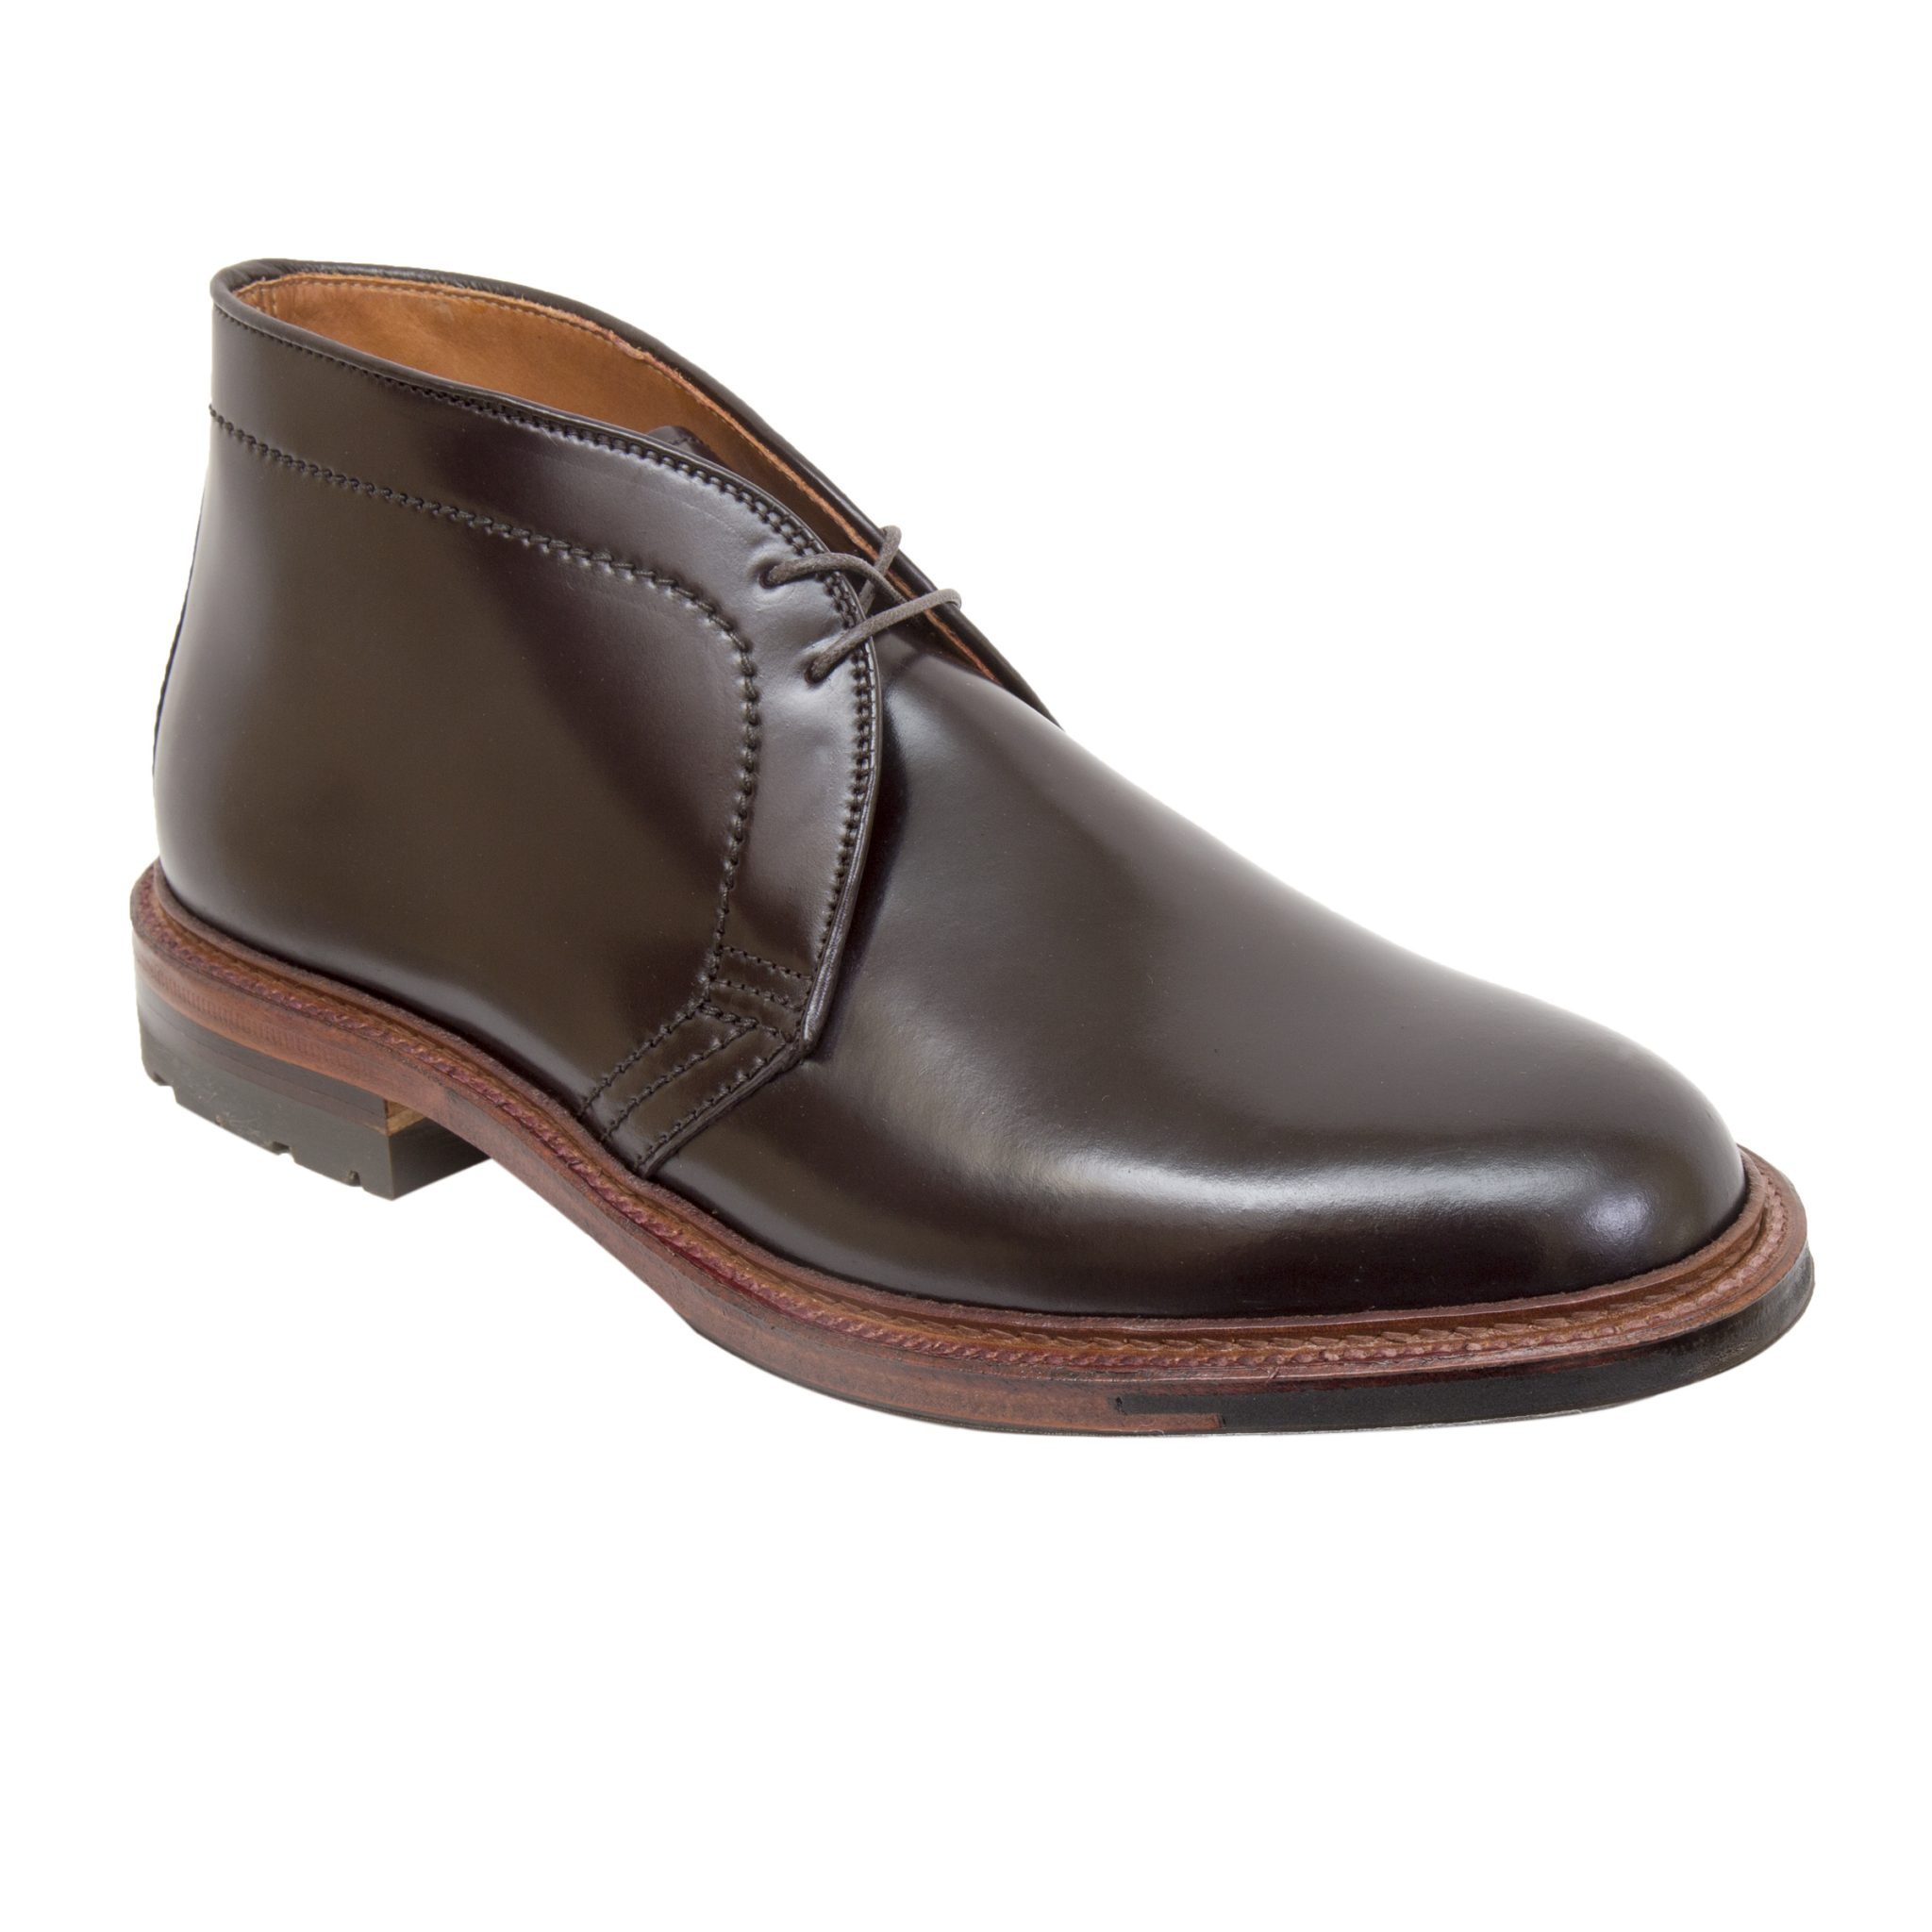 Alden Shoes New York Price